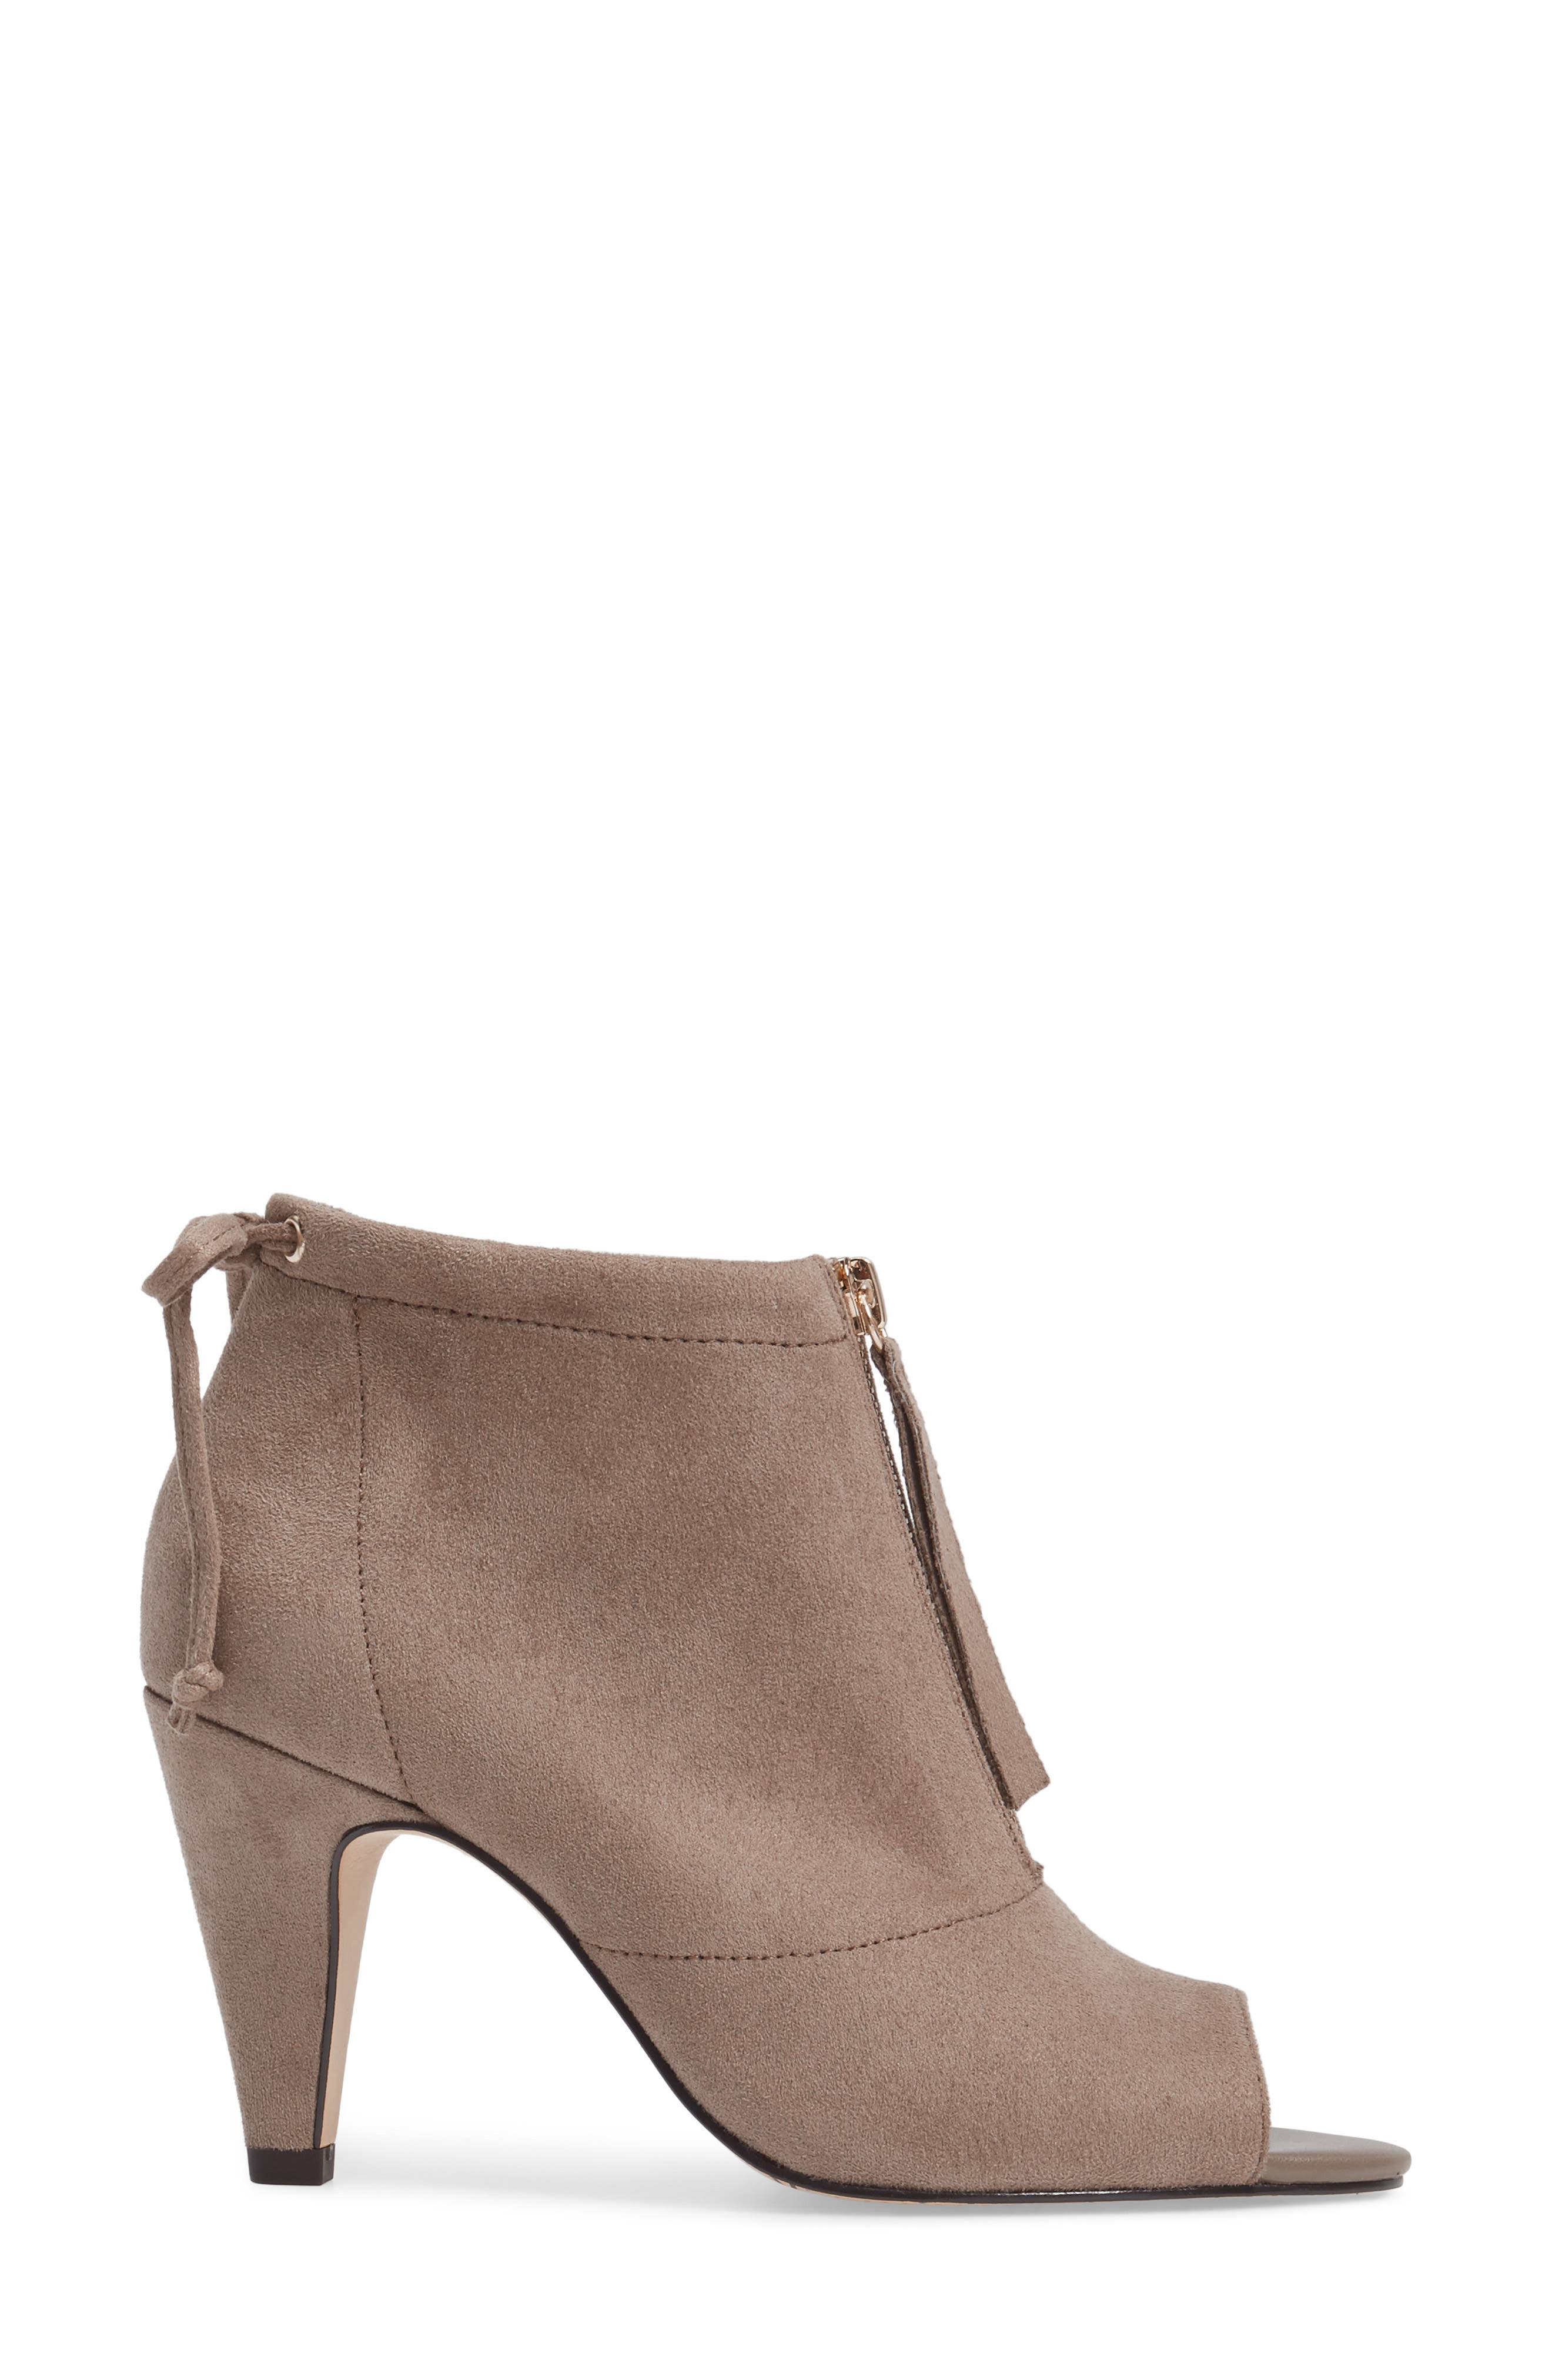 Nicky II Zip Front Bootie,                             Alternate thumbnail 3, color,                             STONE FAUX SUEDE